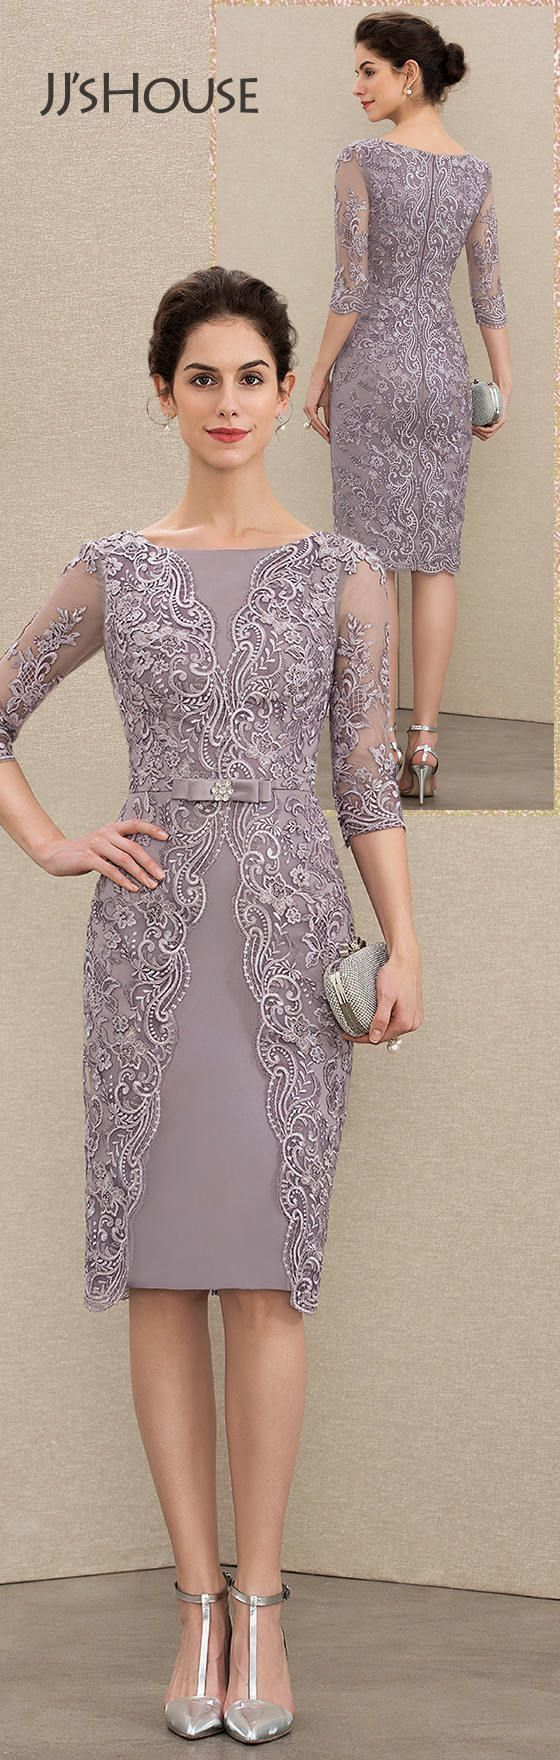 Pin By Anna Gaowacka On Dress In 2020 Lace Dress Cocktail Dress Lace Bride Dress